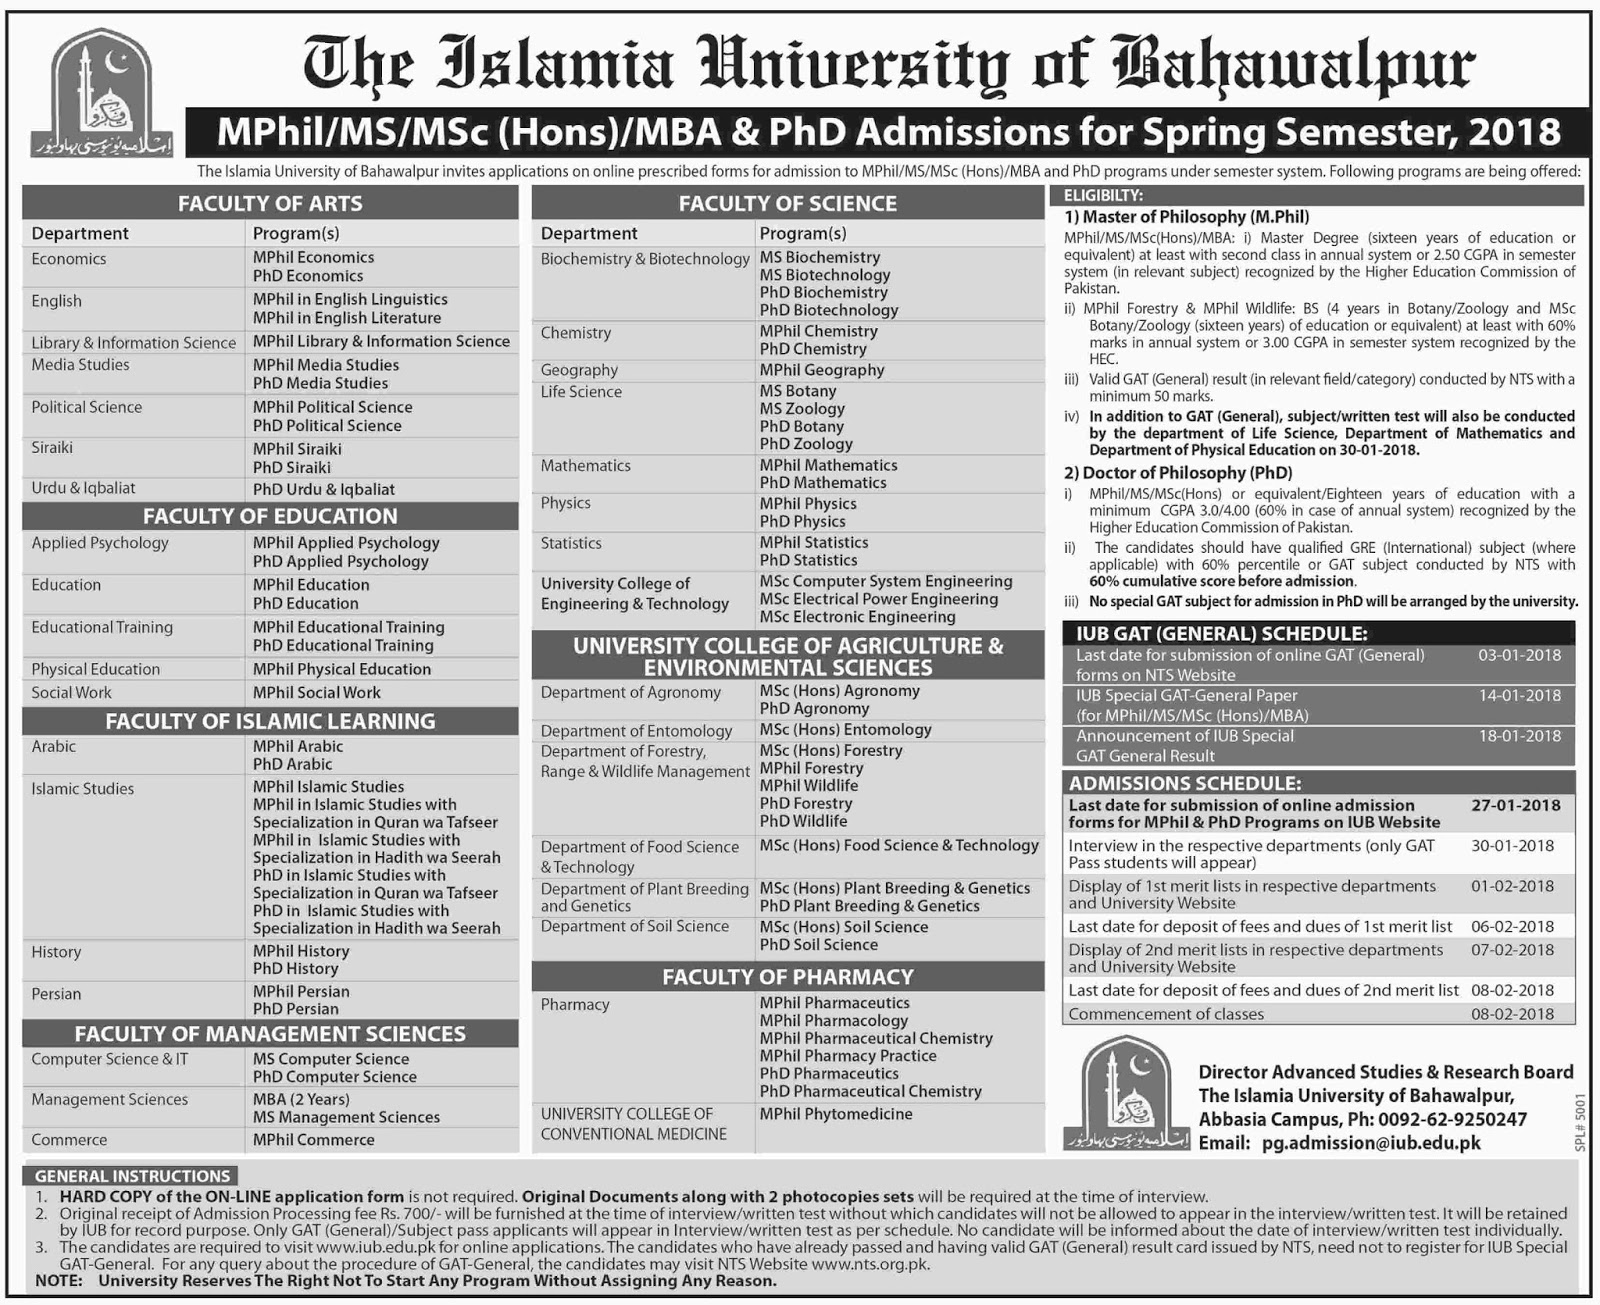 Admissions Open in The Islamia University of Bahawalpur 2018